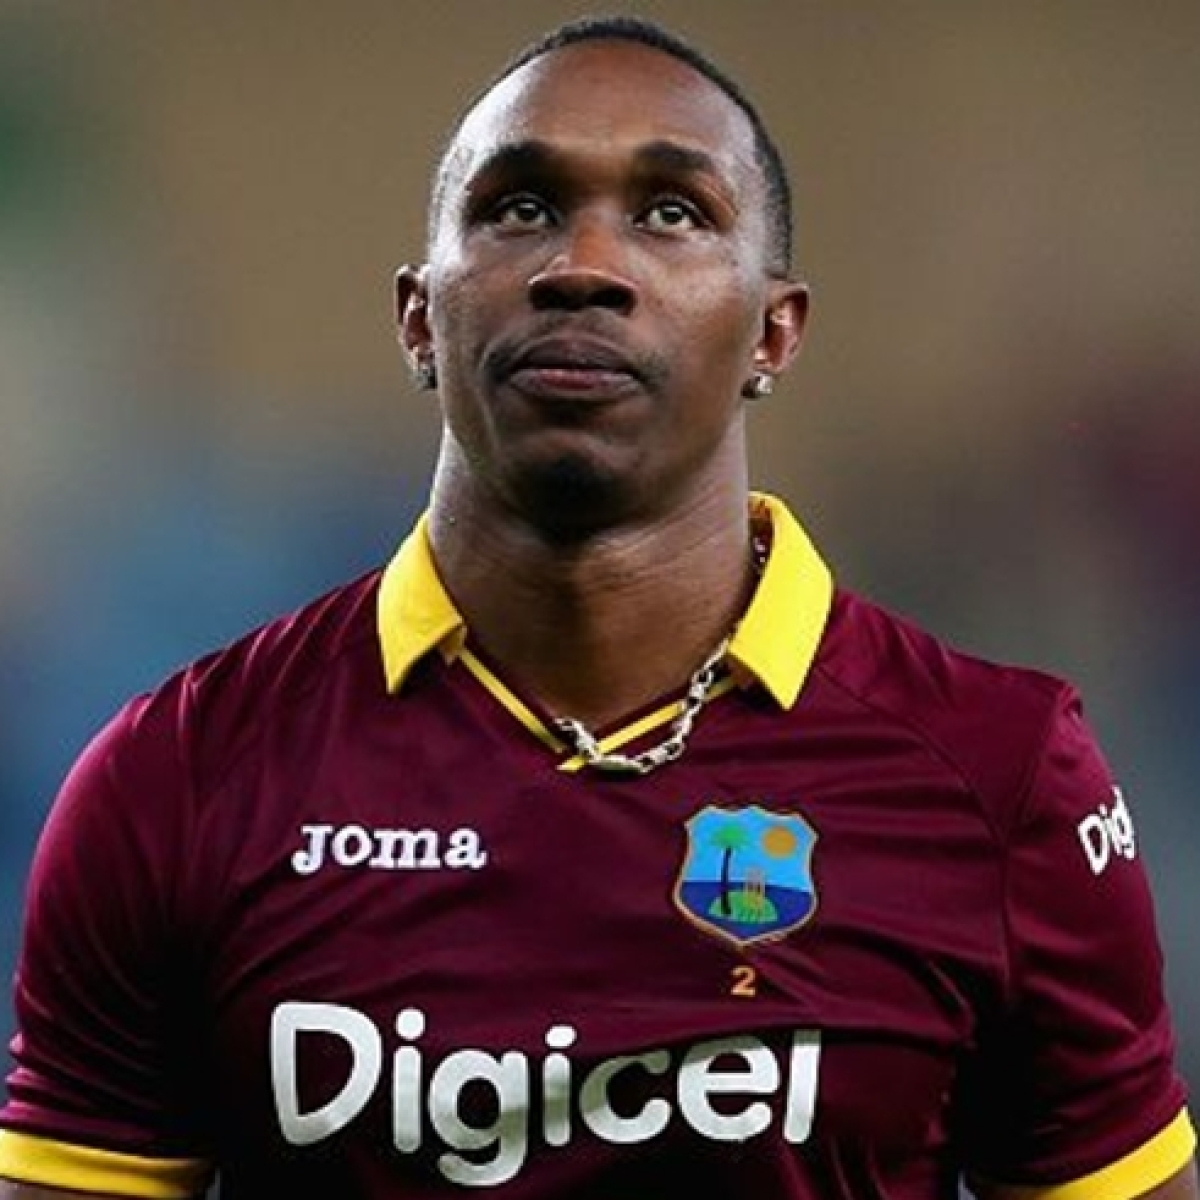 'Enough is enough': After Gayle and Sammy, Dwayne Bravo takes a stand against racism